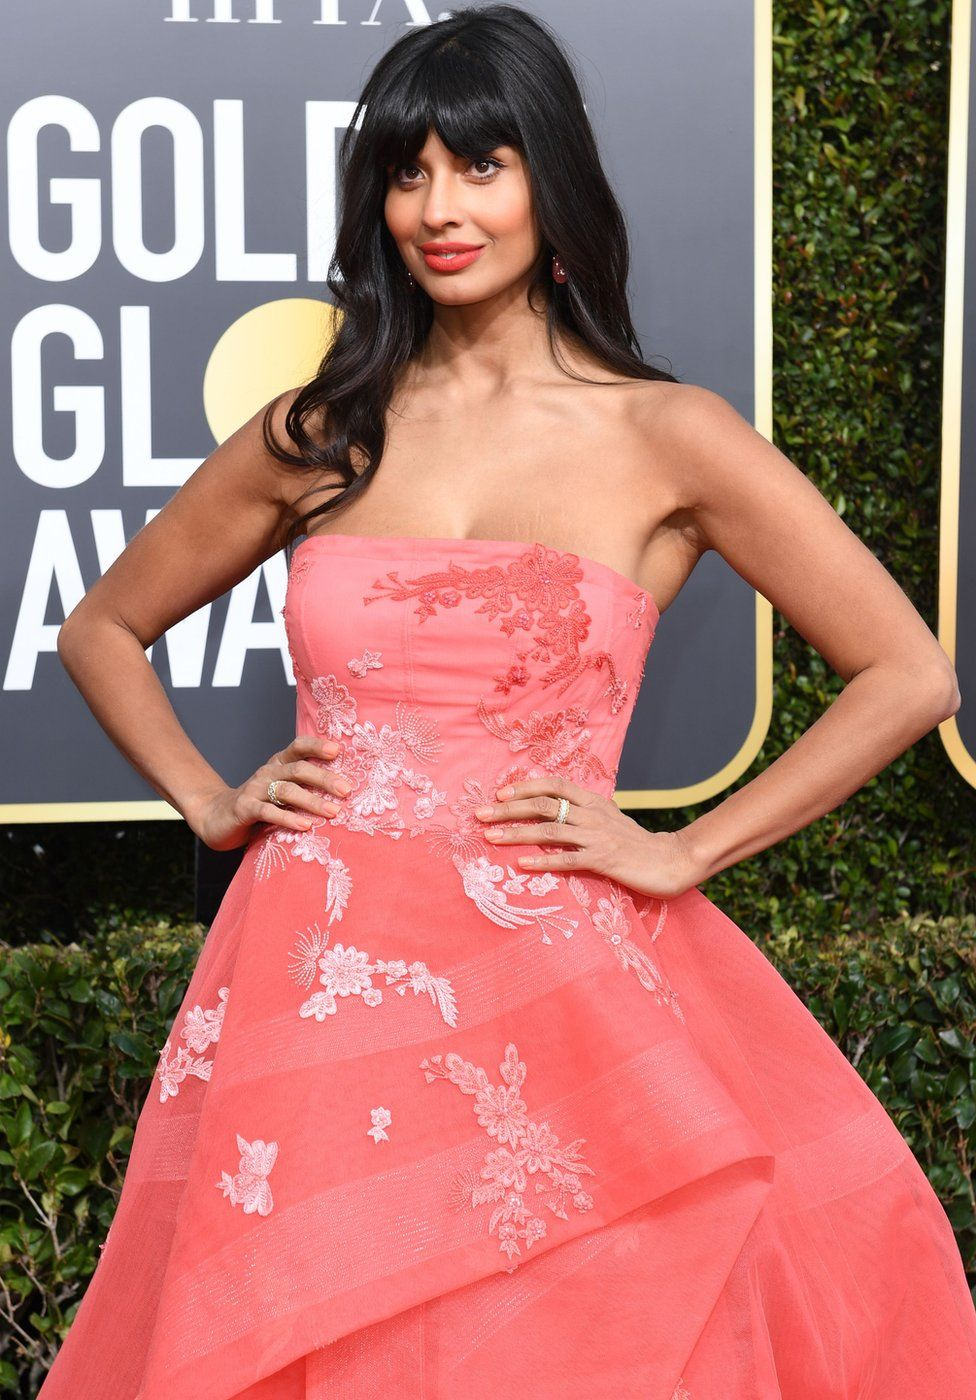 Jameela Jamil Pink Dress Floral Golden Globes 2019